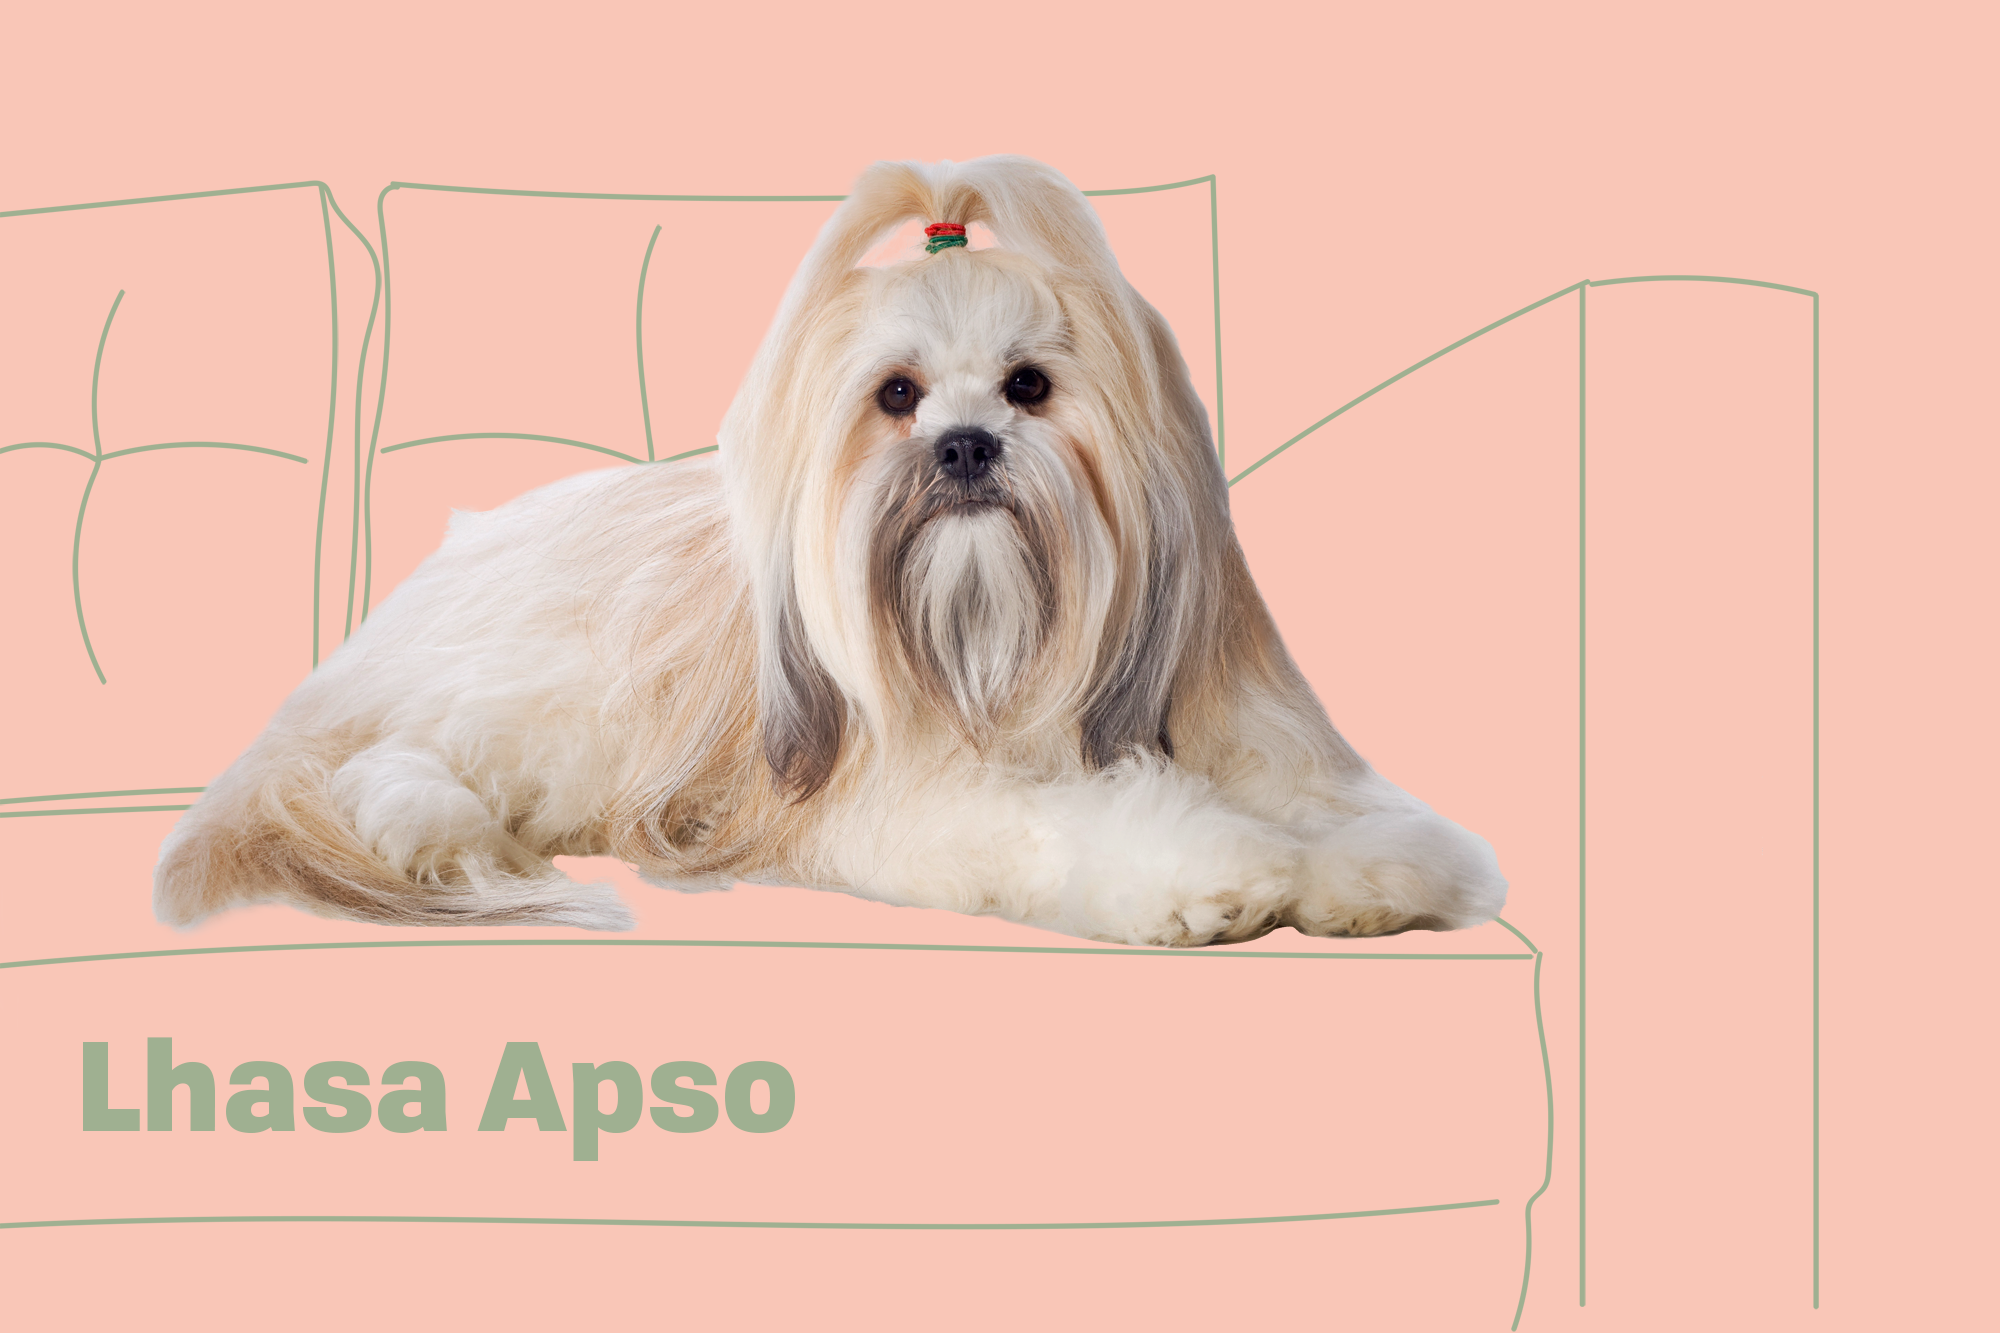 Lhasa Apso Dog Breed Information Characteristics Daily Paws